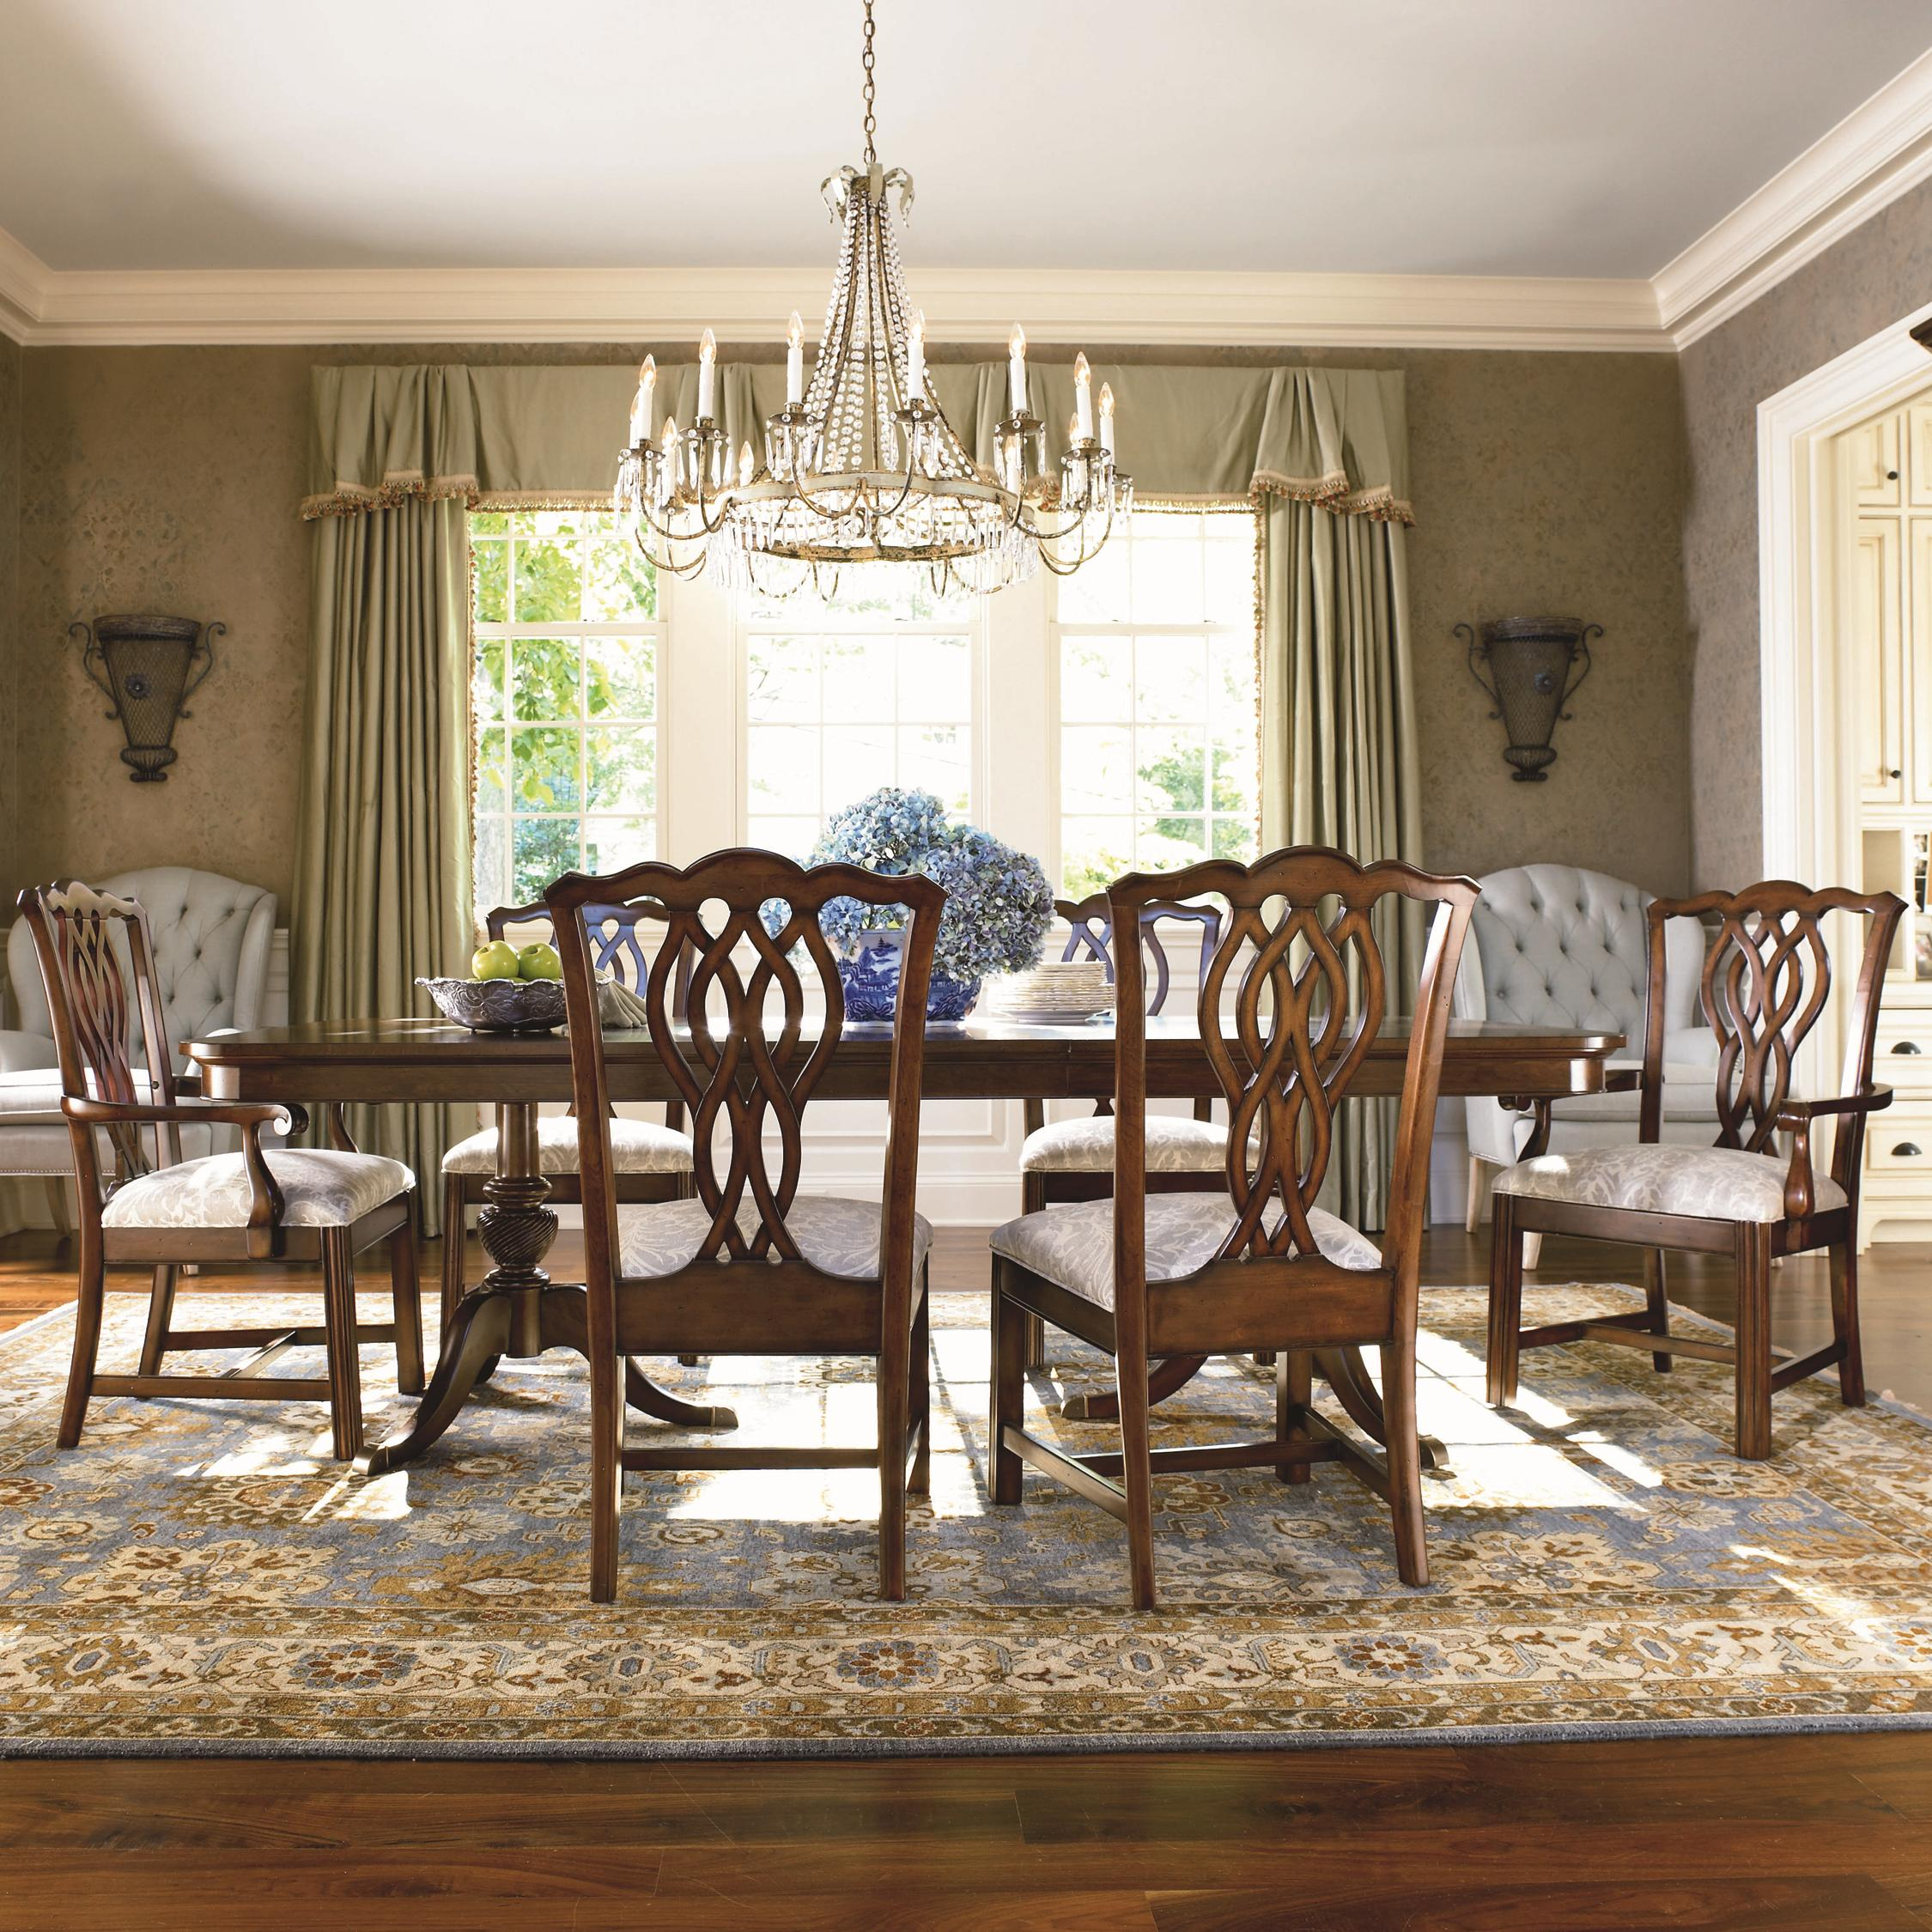 Thomasville Tate Street 7 Piece Double Pedestal Dinner Table and